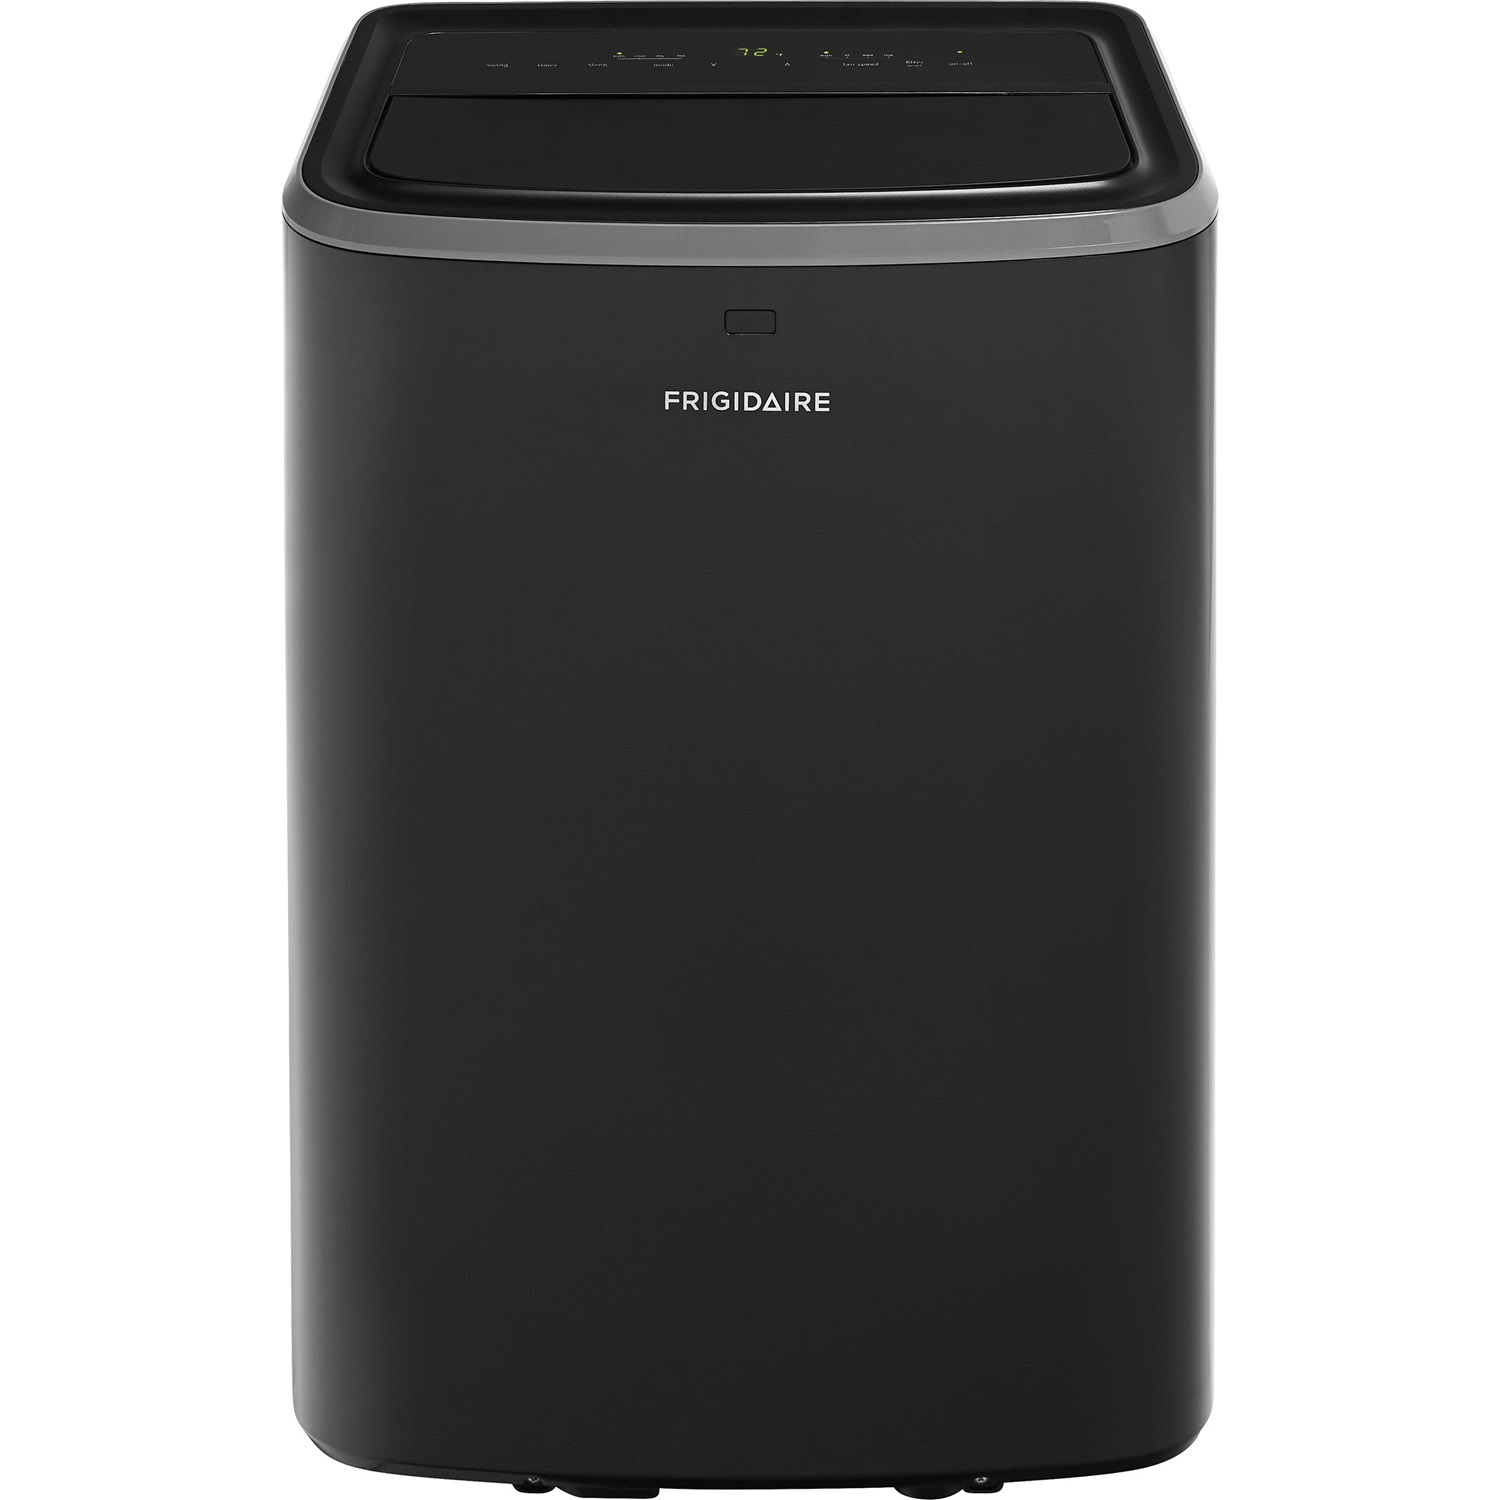 Frigidaire Home Comfort 12,000 BTU 10.2 EER 115V Black Portable Air Conditioner